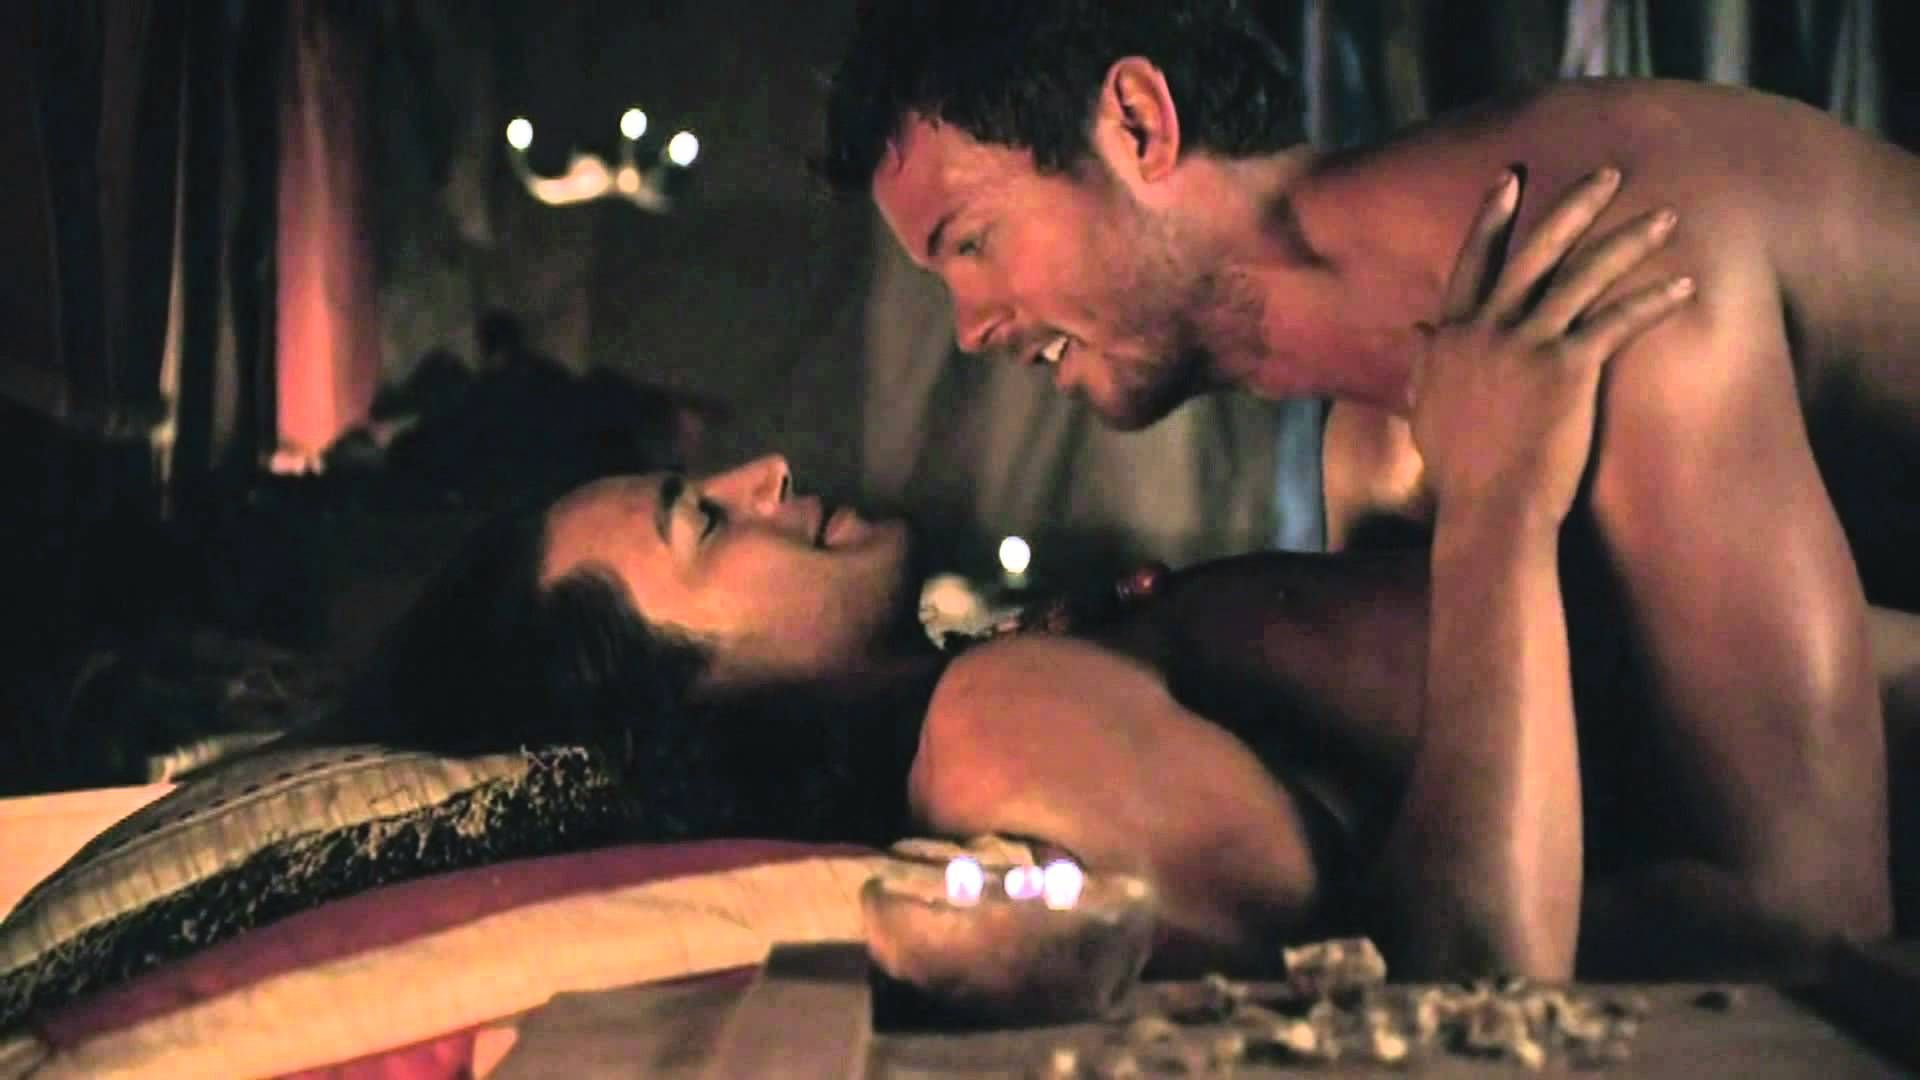 A Agron Nasir Nagronspartacus Fan Vid To The Song Nirvana By Adam Lambert I Just Had To Make It Their Relationship And This Song Demanded It